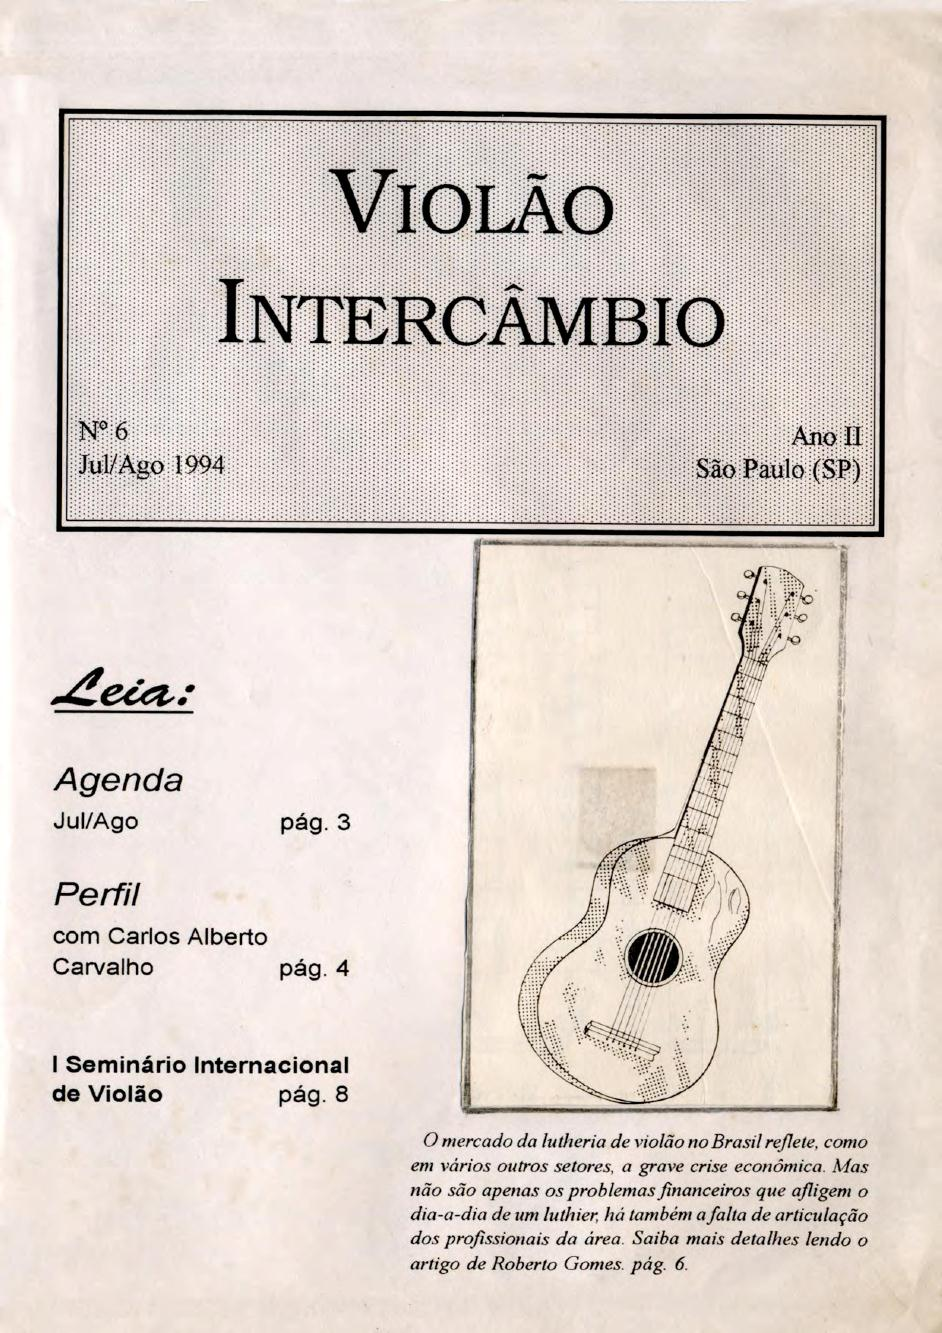 Revista Violão Intercâmbio - n 6 ano II - jul/ago 1994